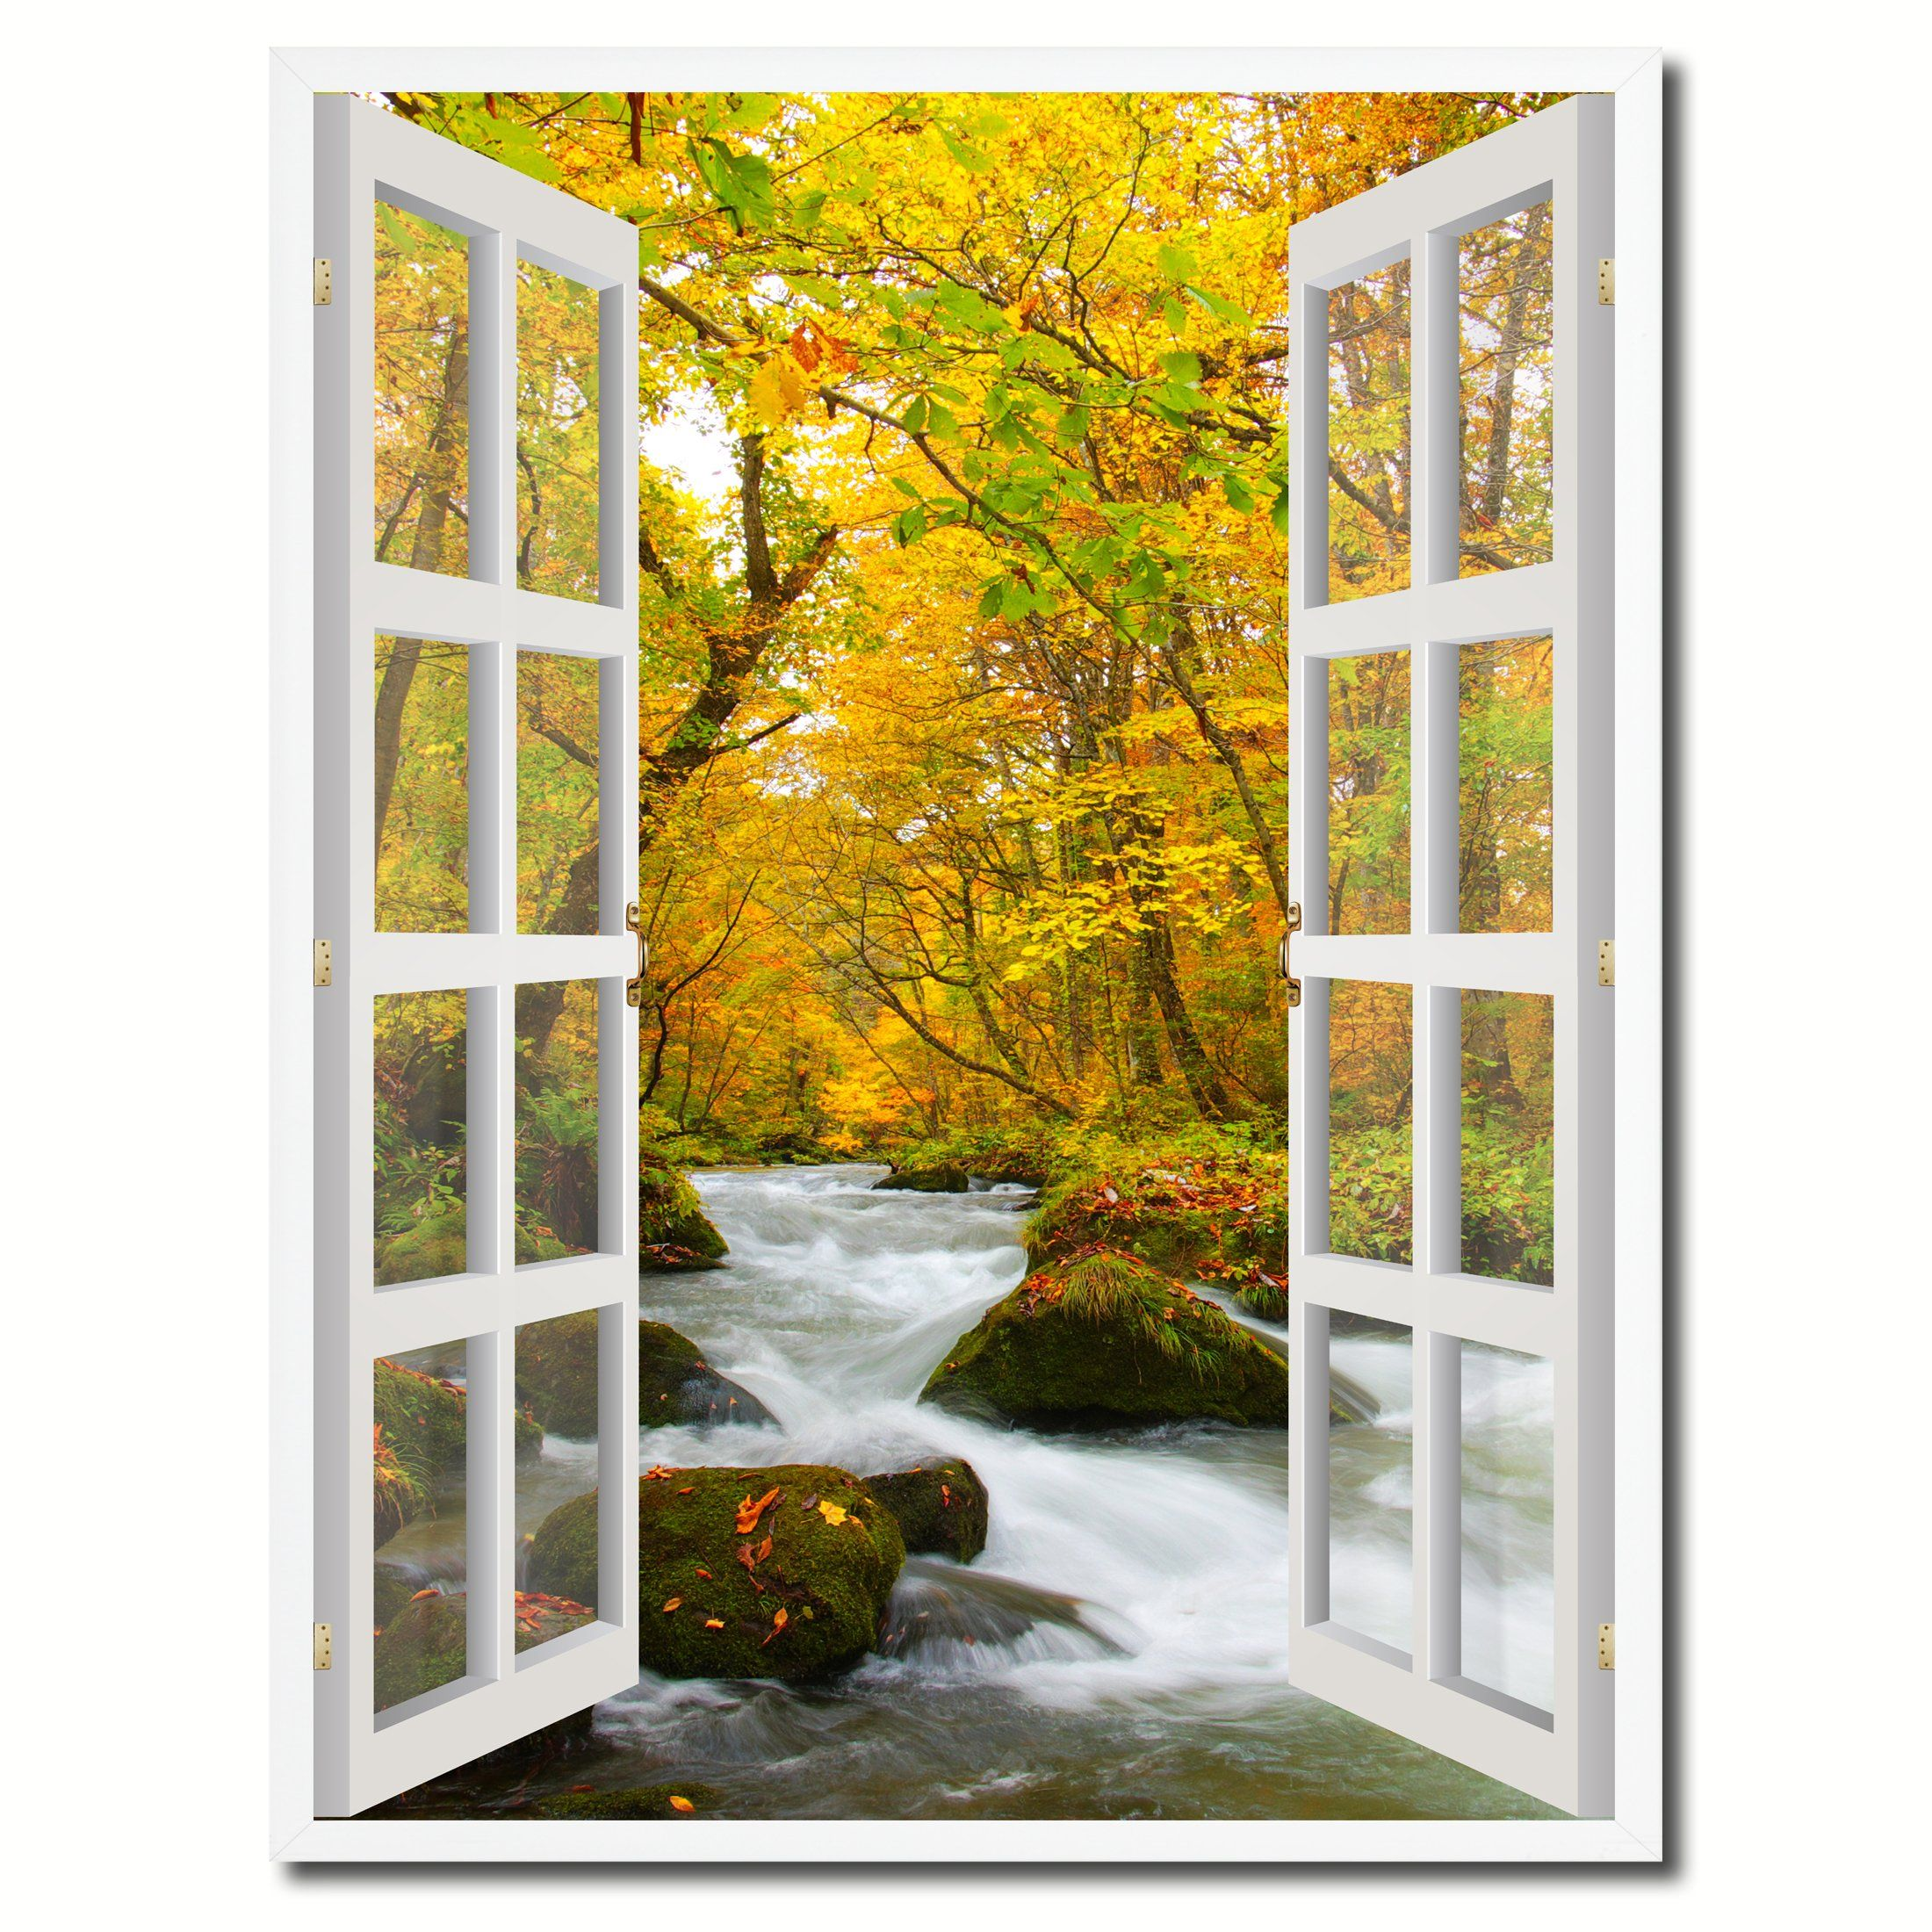 Autumn River Picture French Window Canvas Print with Frame Gifts ...